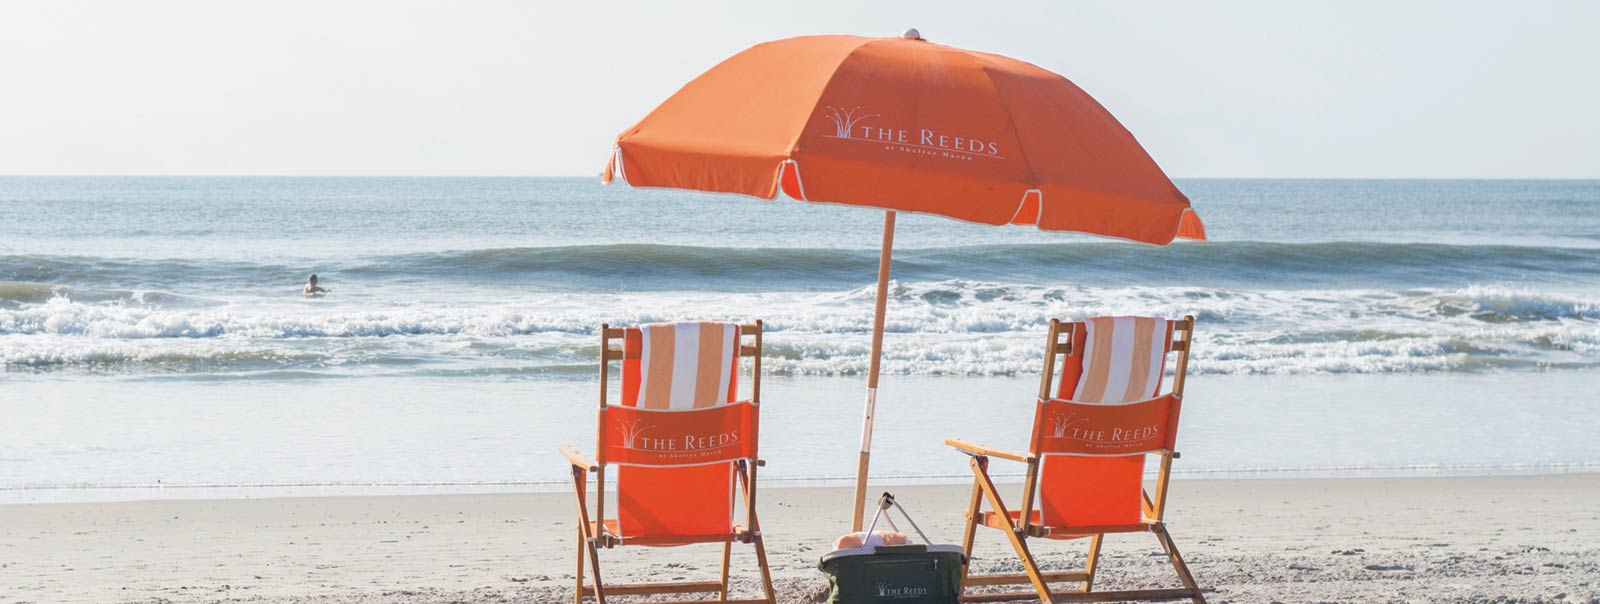 New Jersey Luxury Beach Resort Amenities